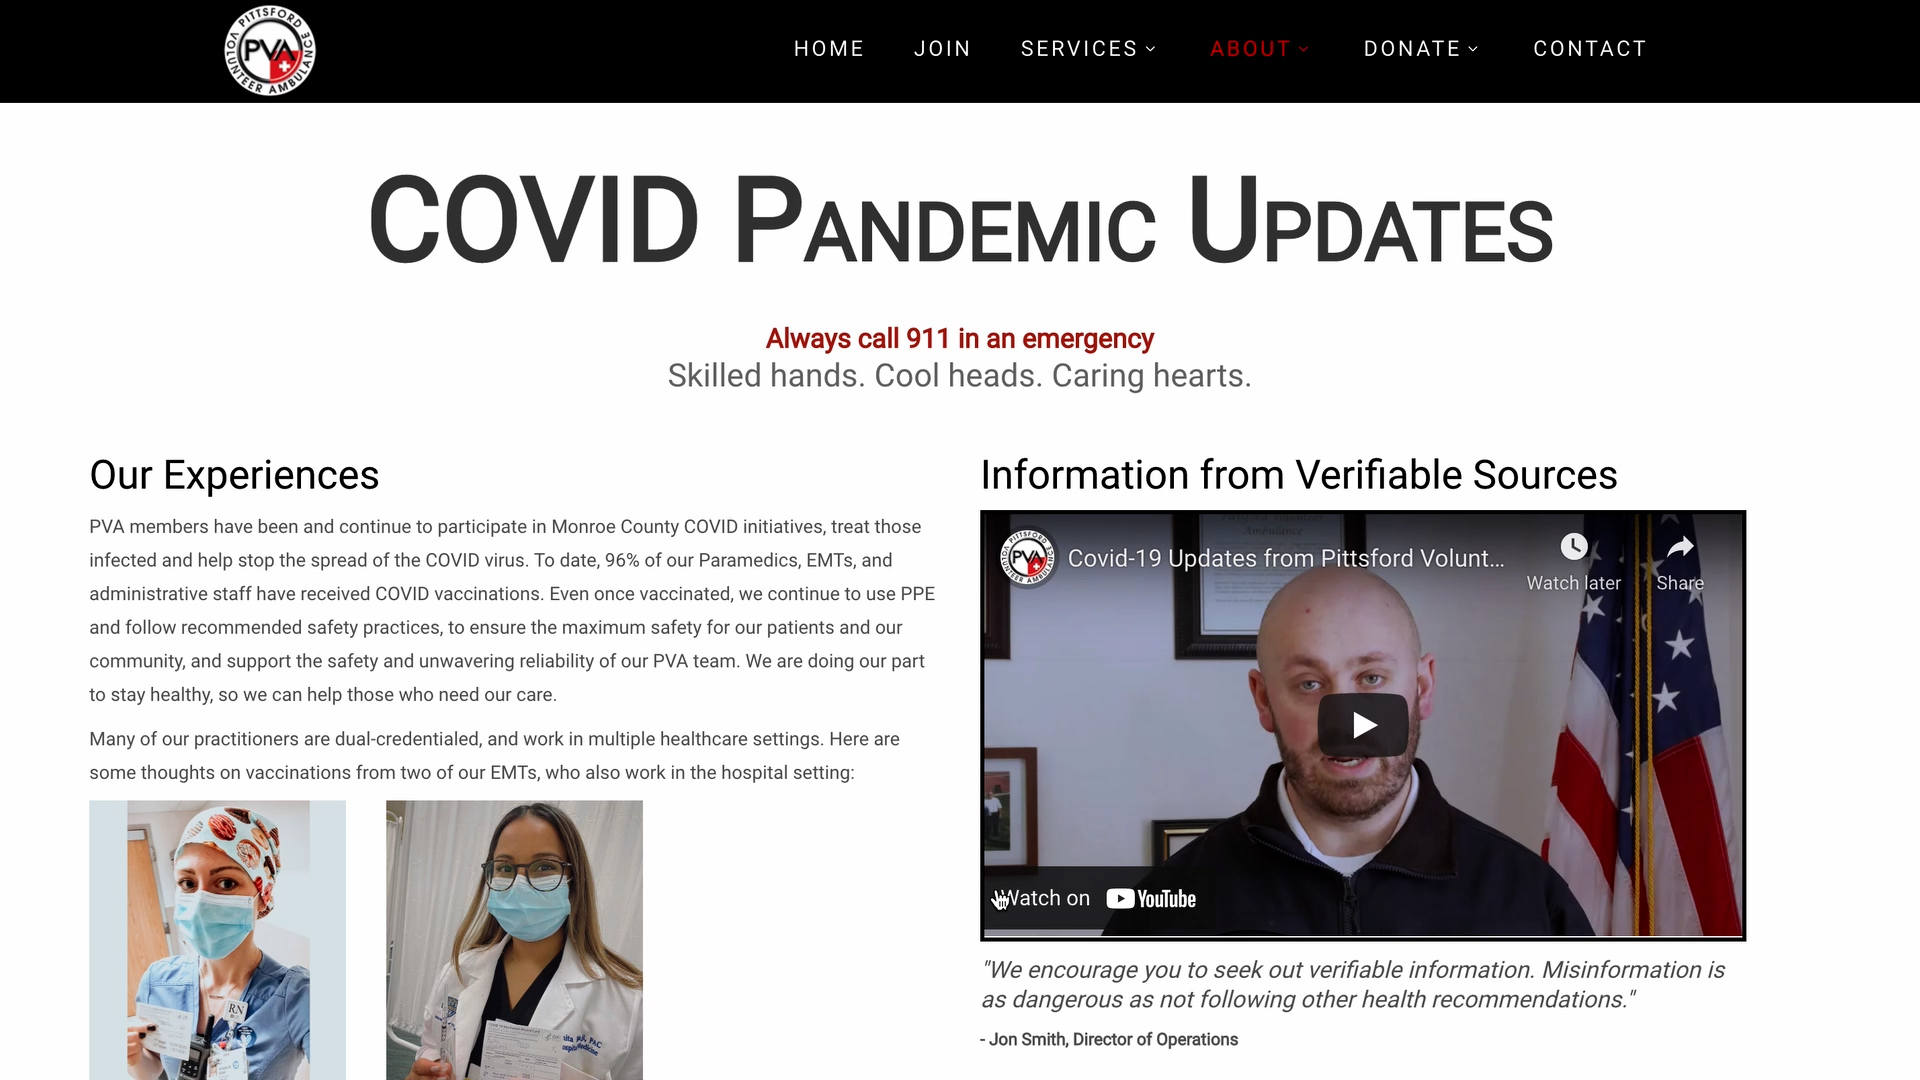 Verifiable Resources: COVID Pandemic Updates on PVA Website